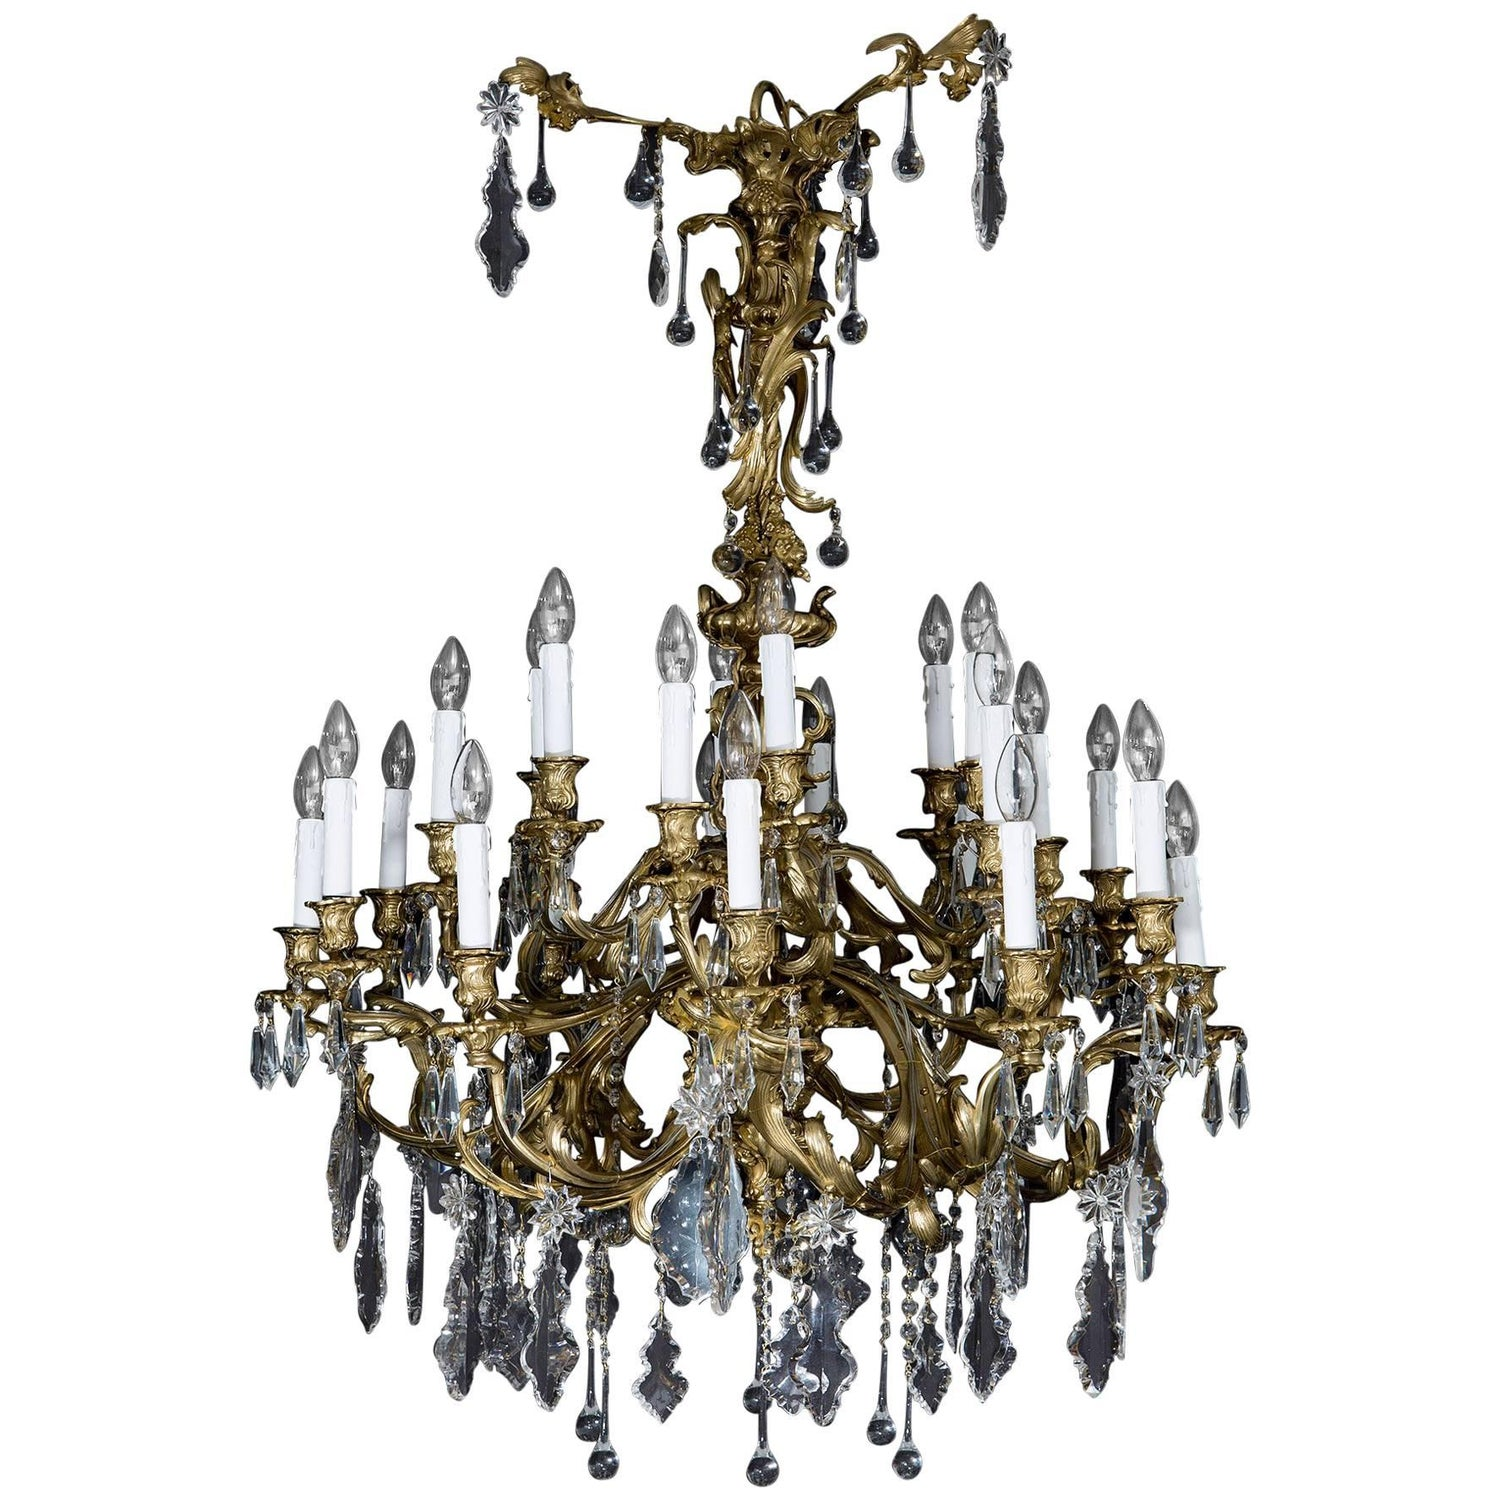 Antique French Chandelier in the Rococo Style of Gilt Bronze and